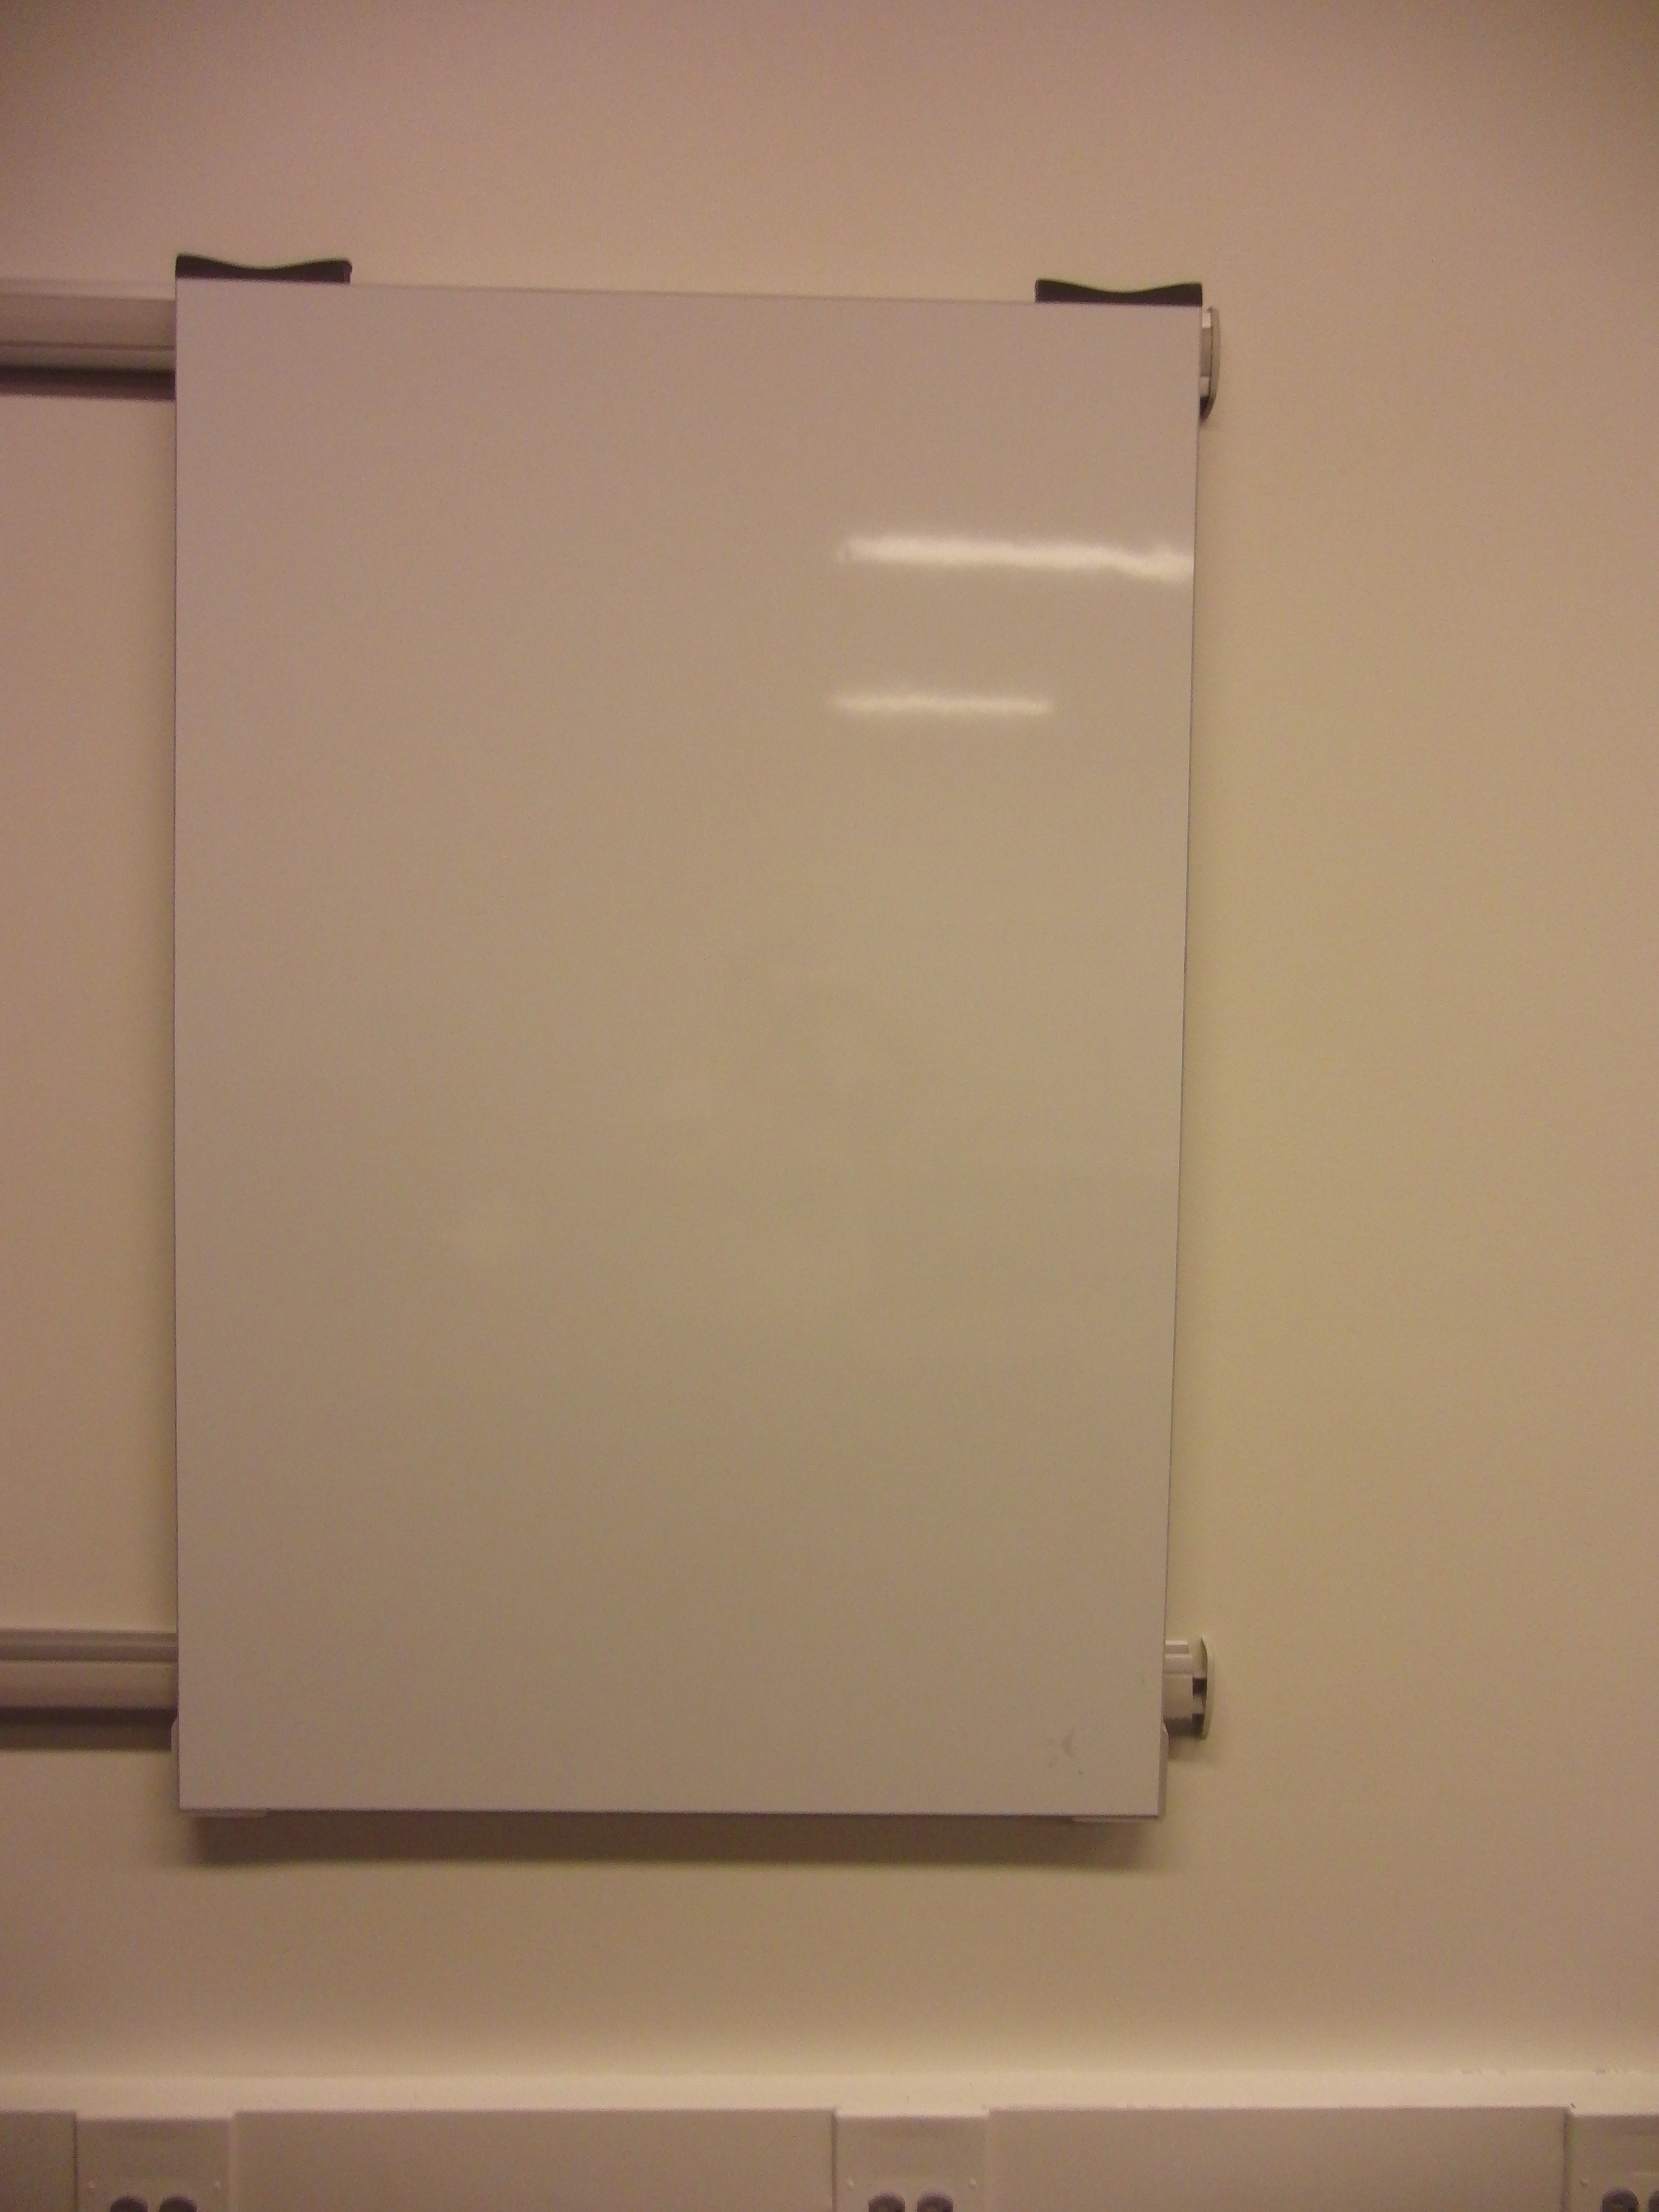 Photo of one of the moveable whiteboards installed in the space